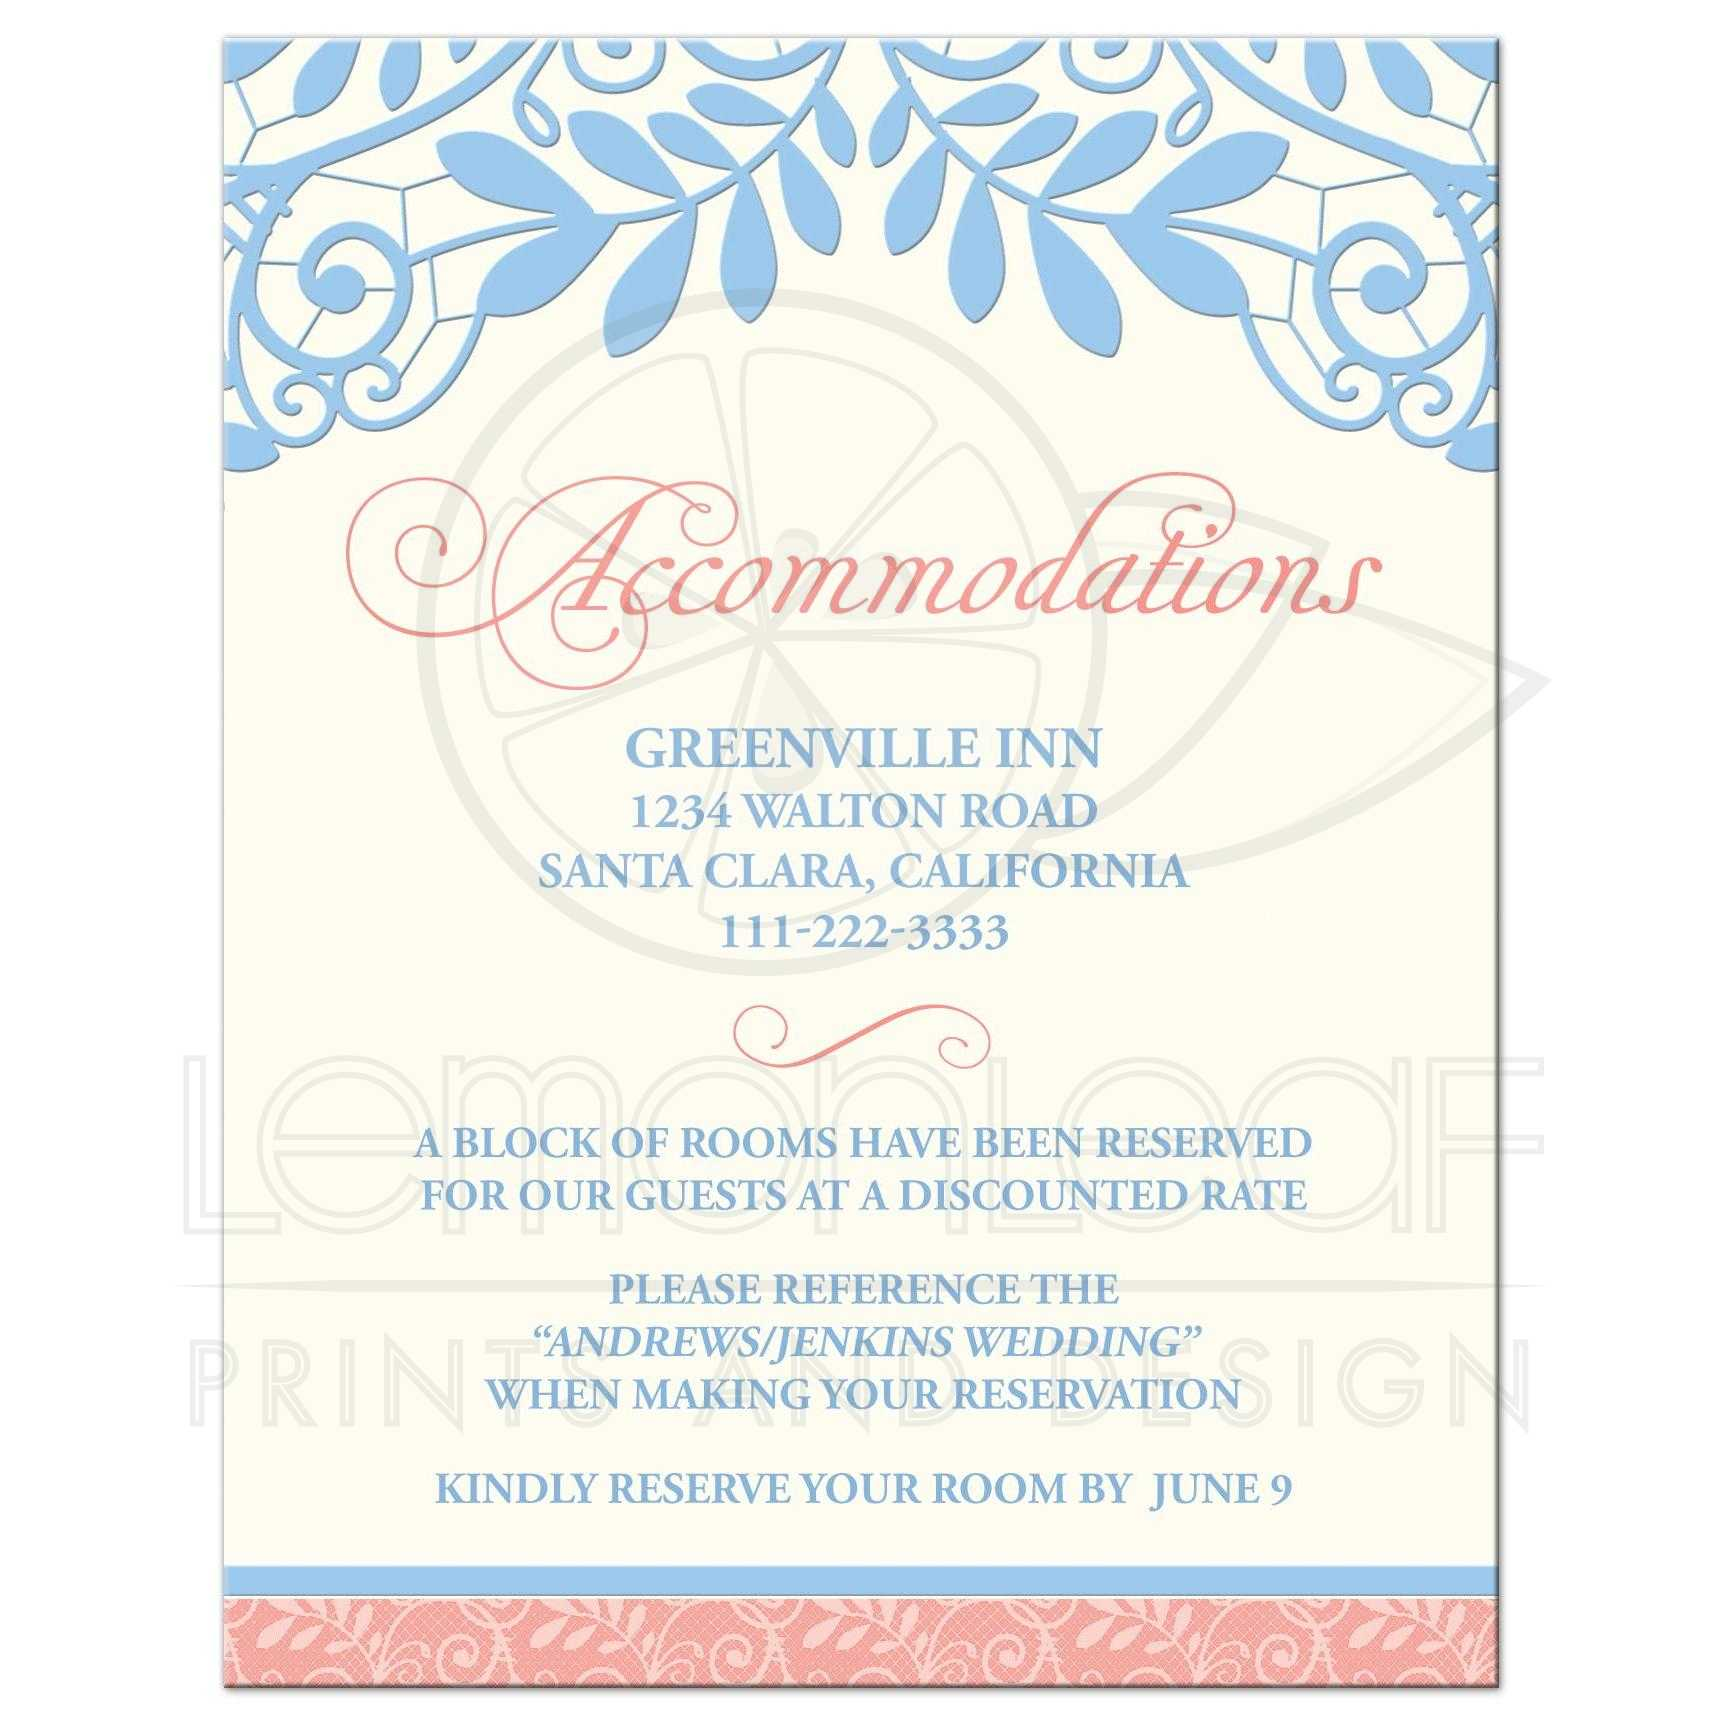 Coral Powder Blue Lace Wedding Accommodations Card